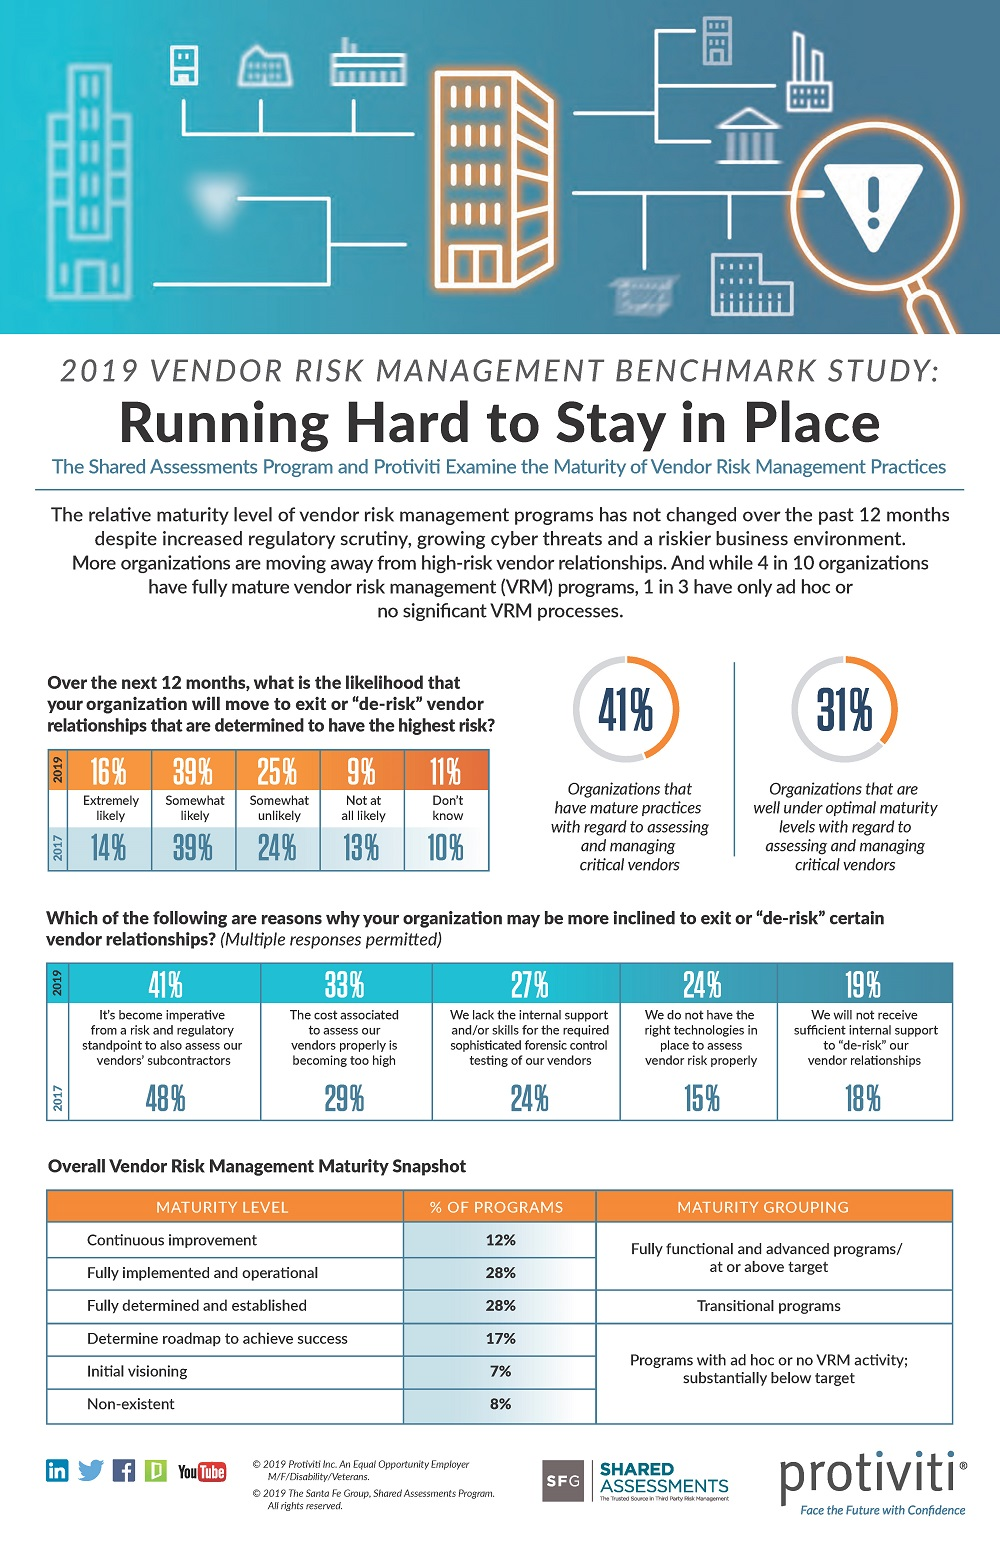 2019 VRM Study Infographic